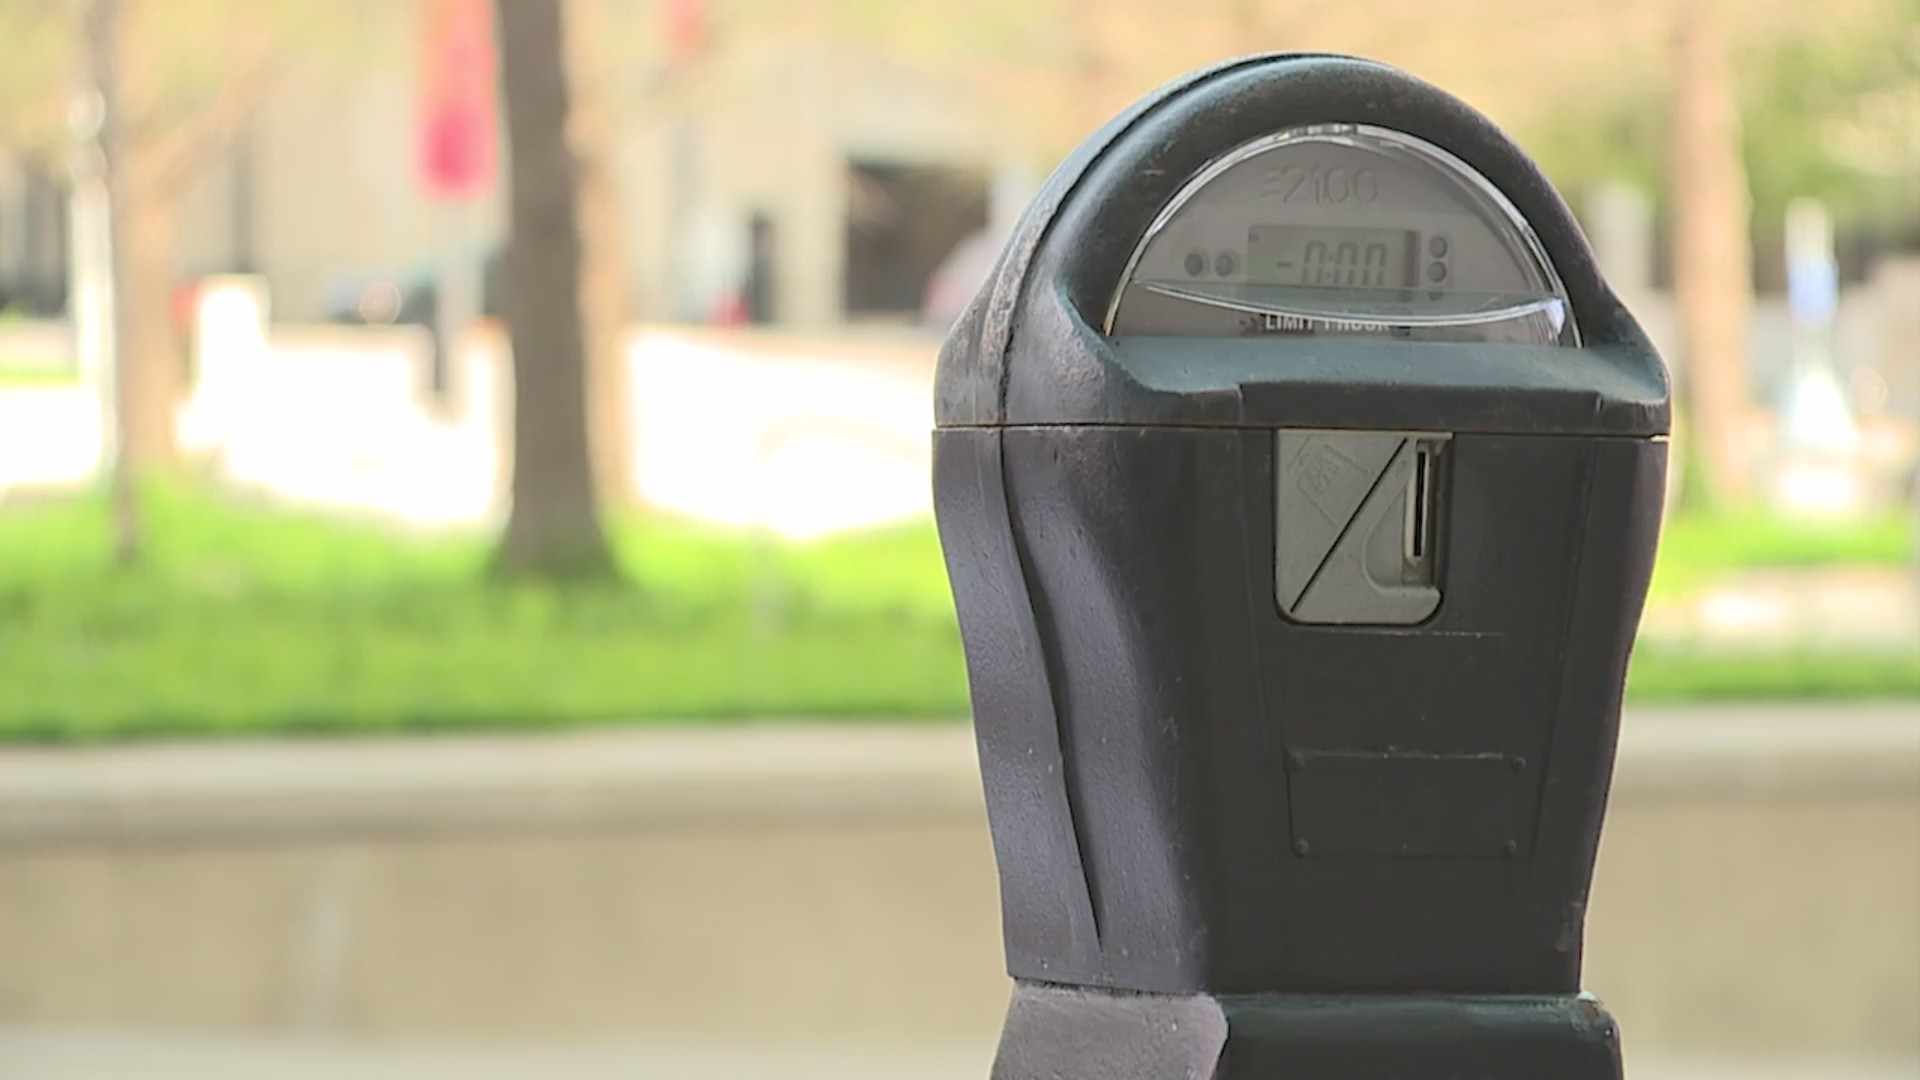 kansas city parking meter